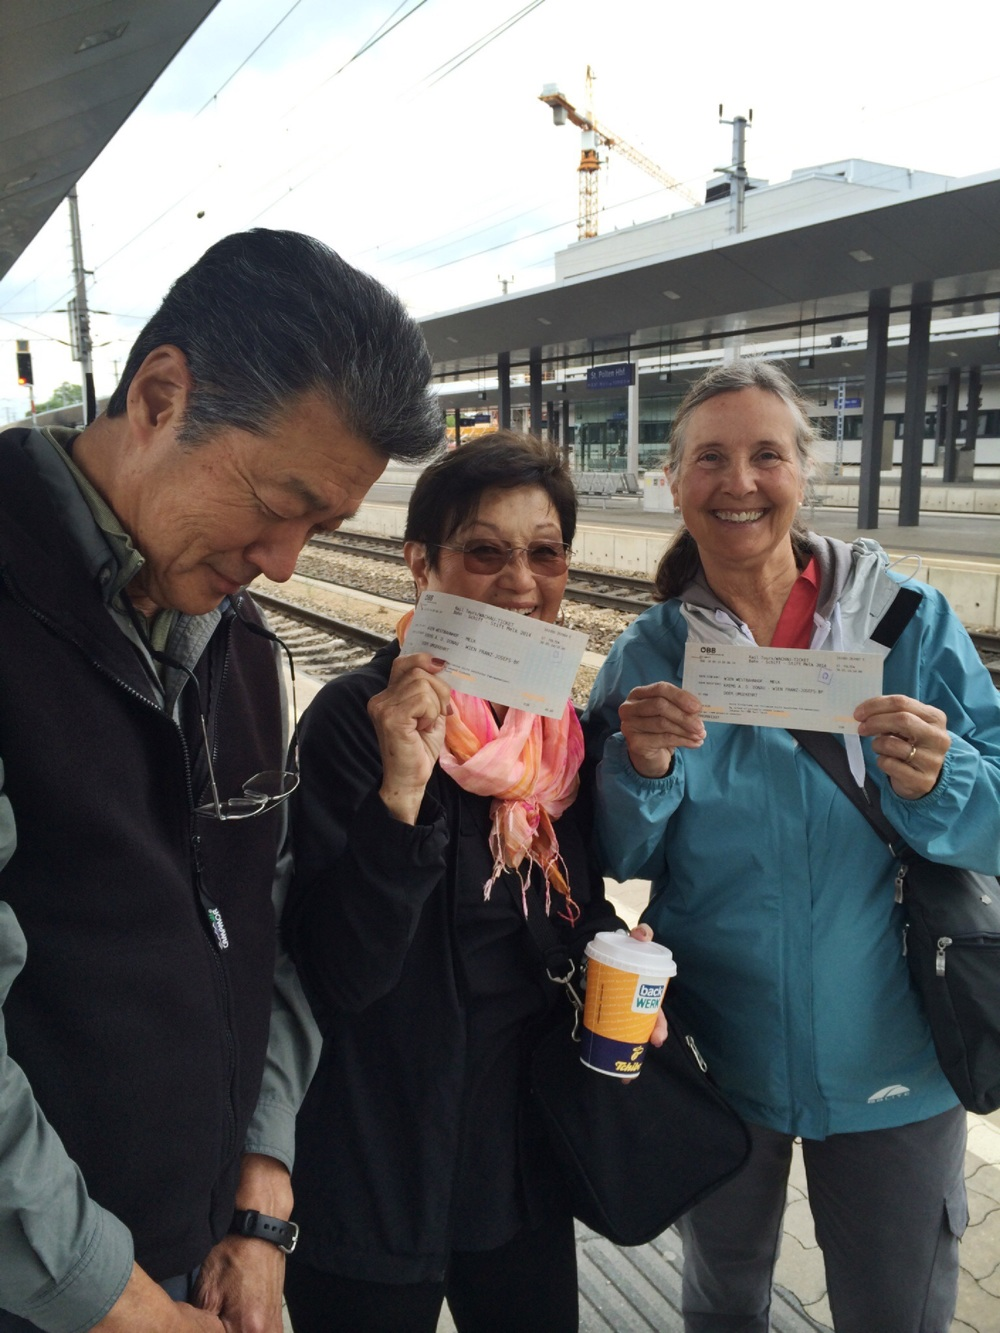 Ray and I forget to buythe girl's train tickets